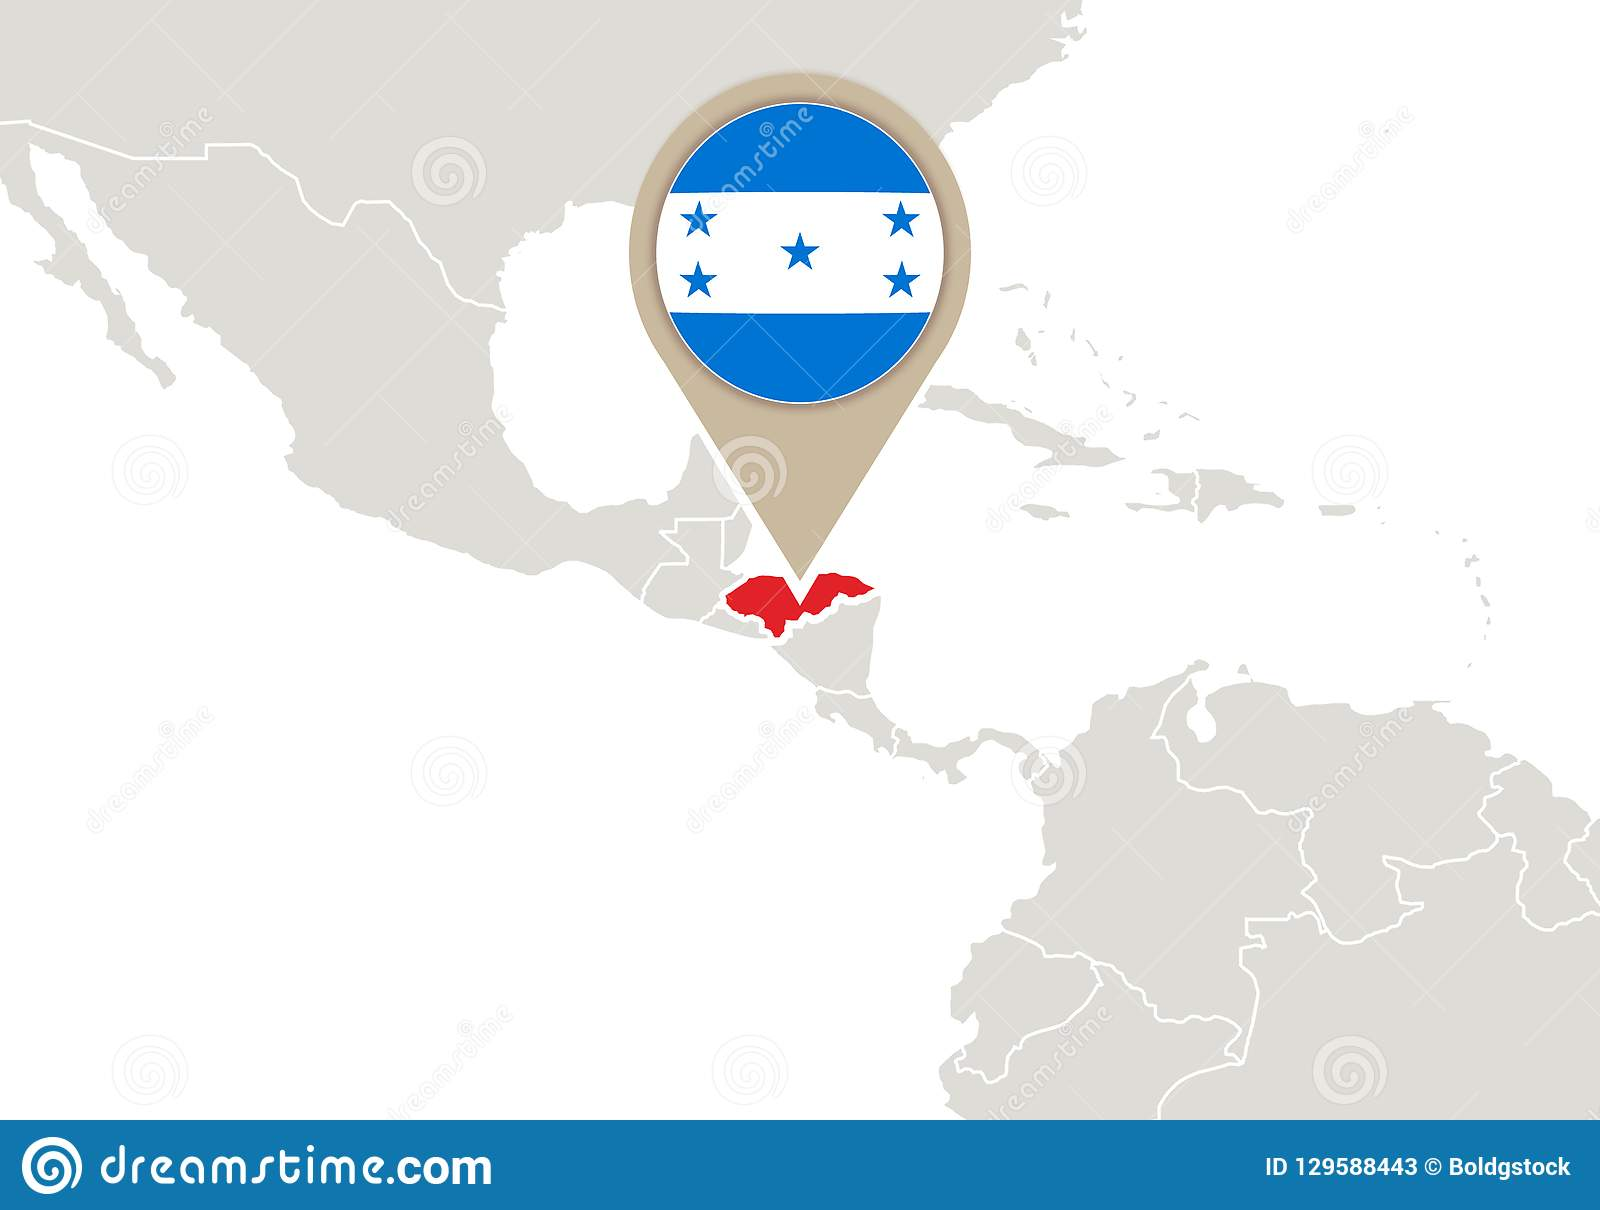 Honduras On World Map Stock Vector Illustration Of Locations